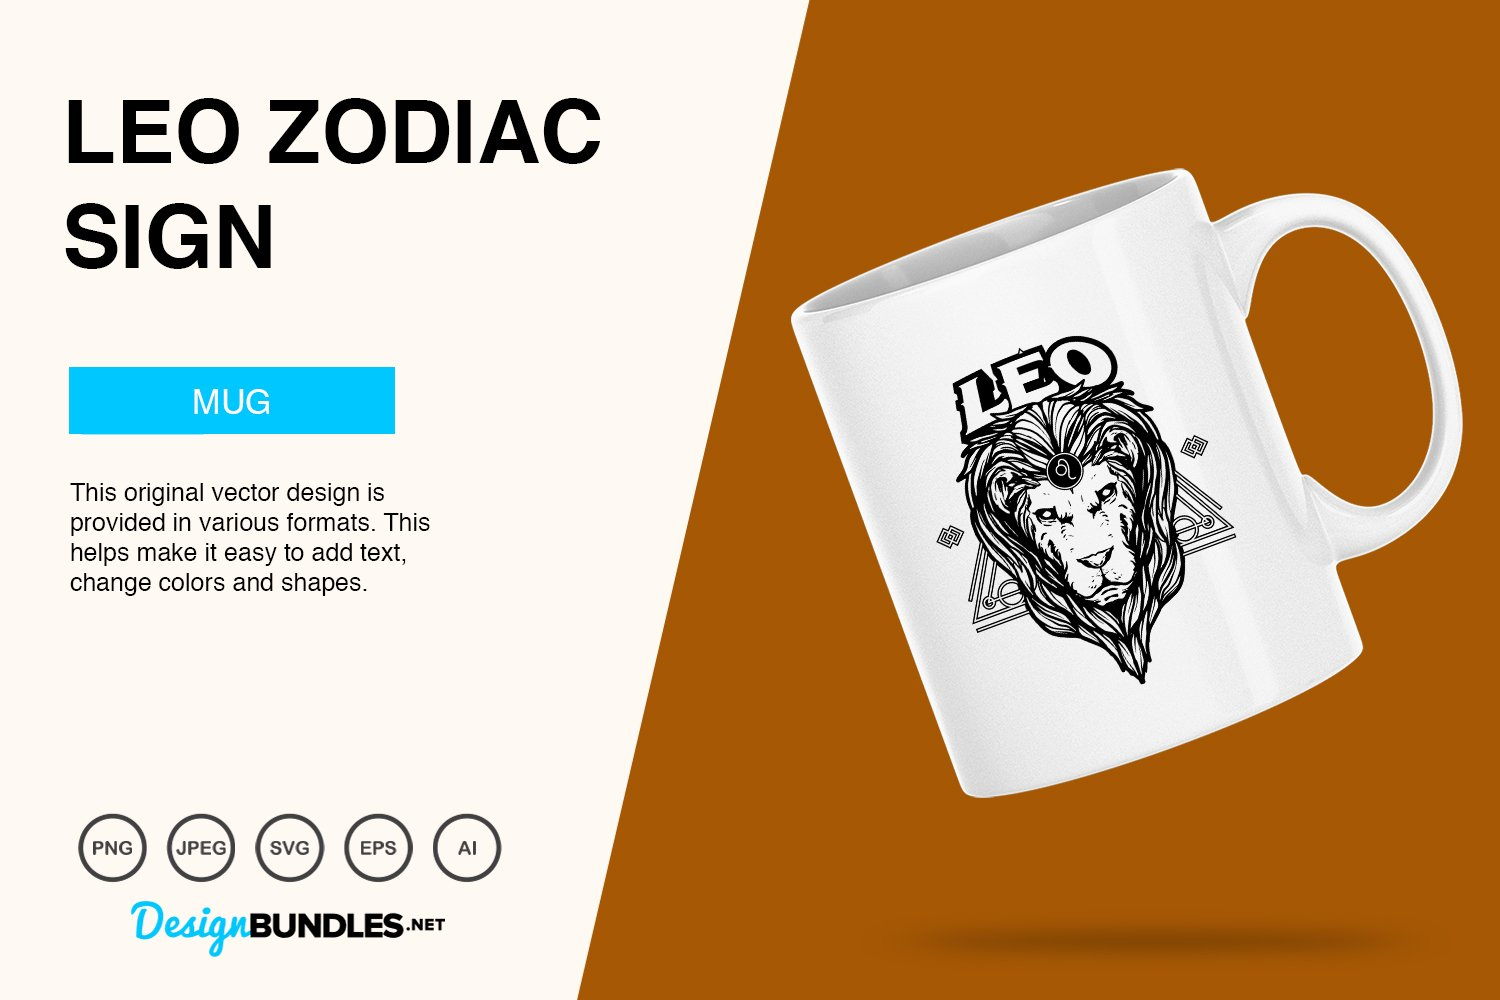 Leo Zodiac Sign Vector Illustration example image 2